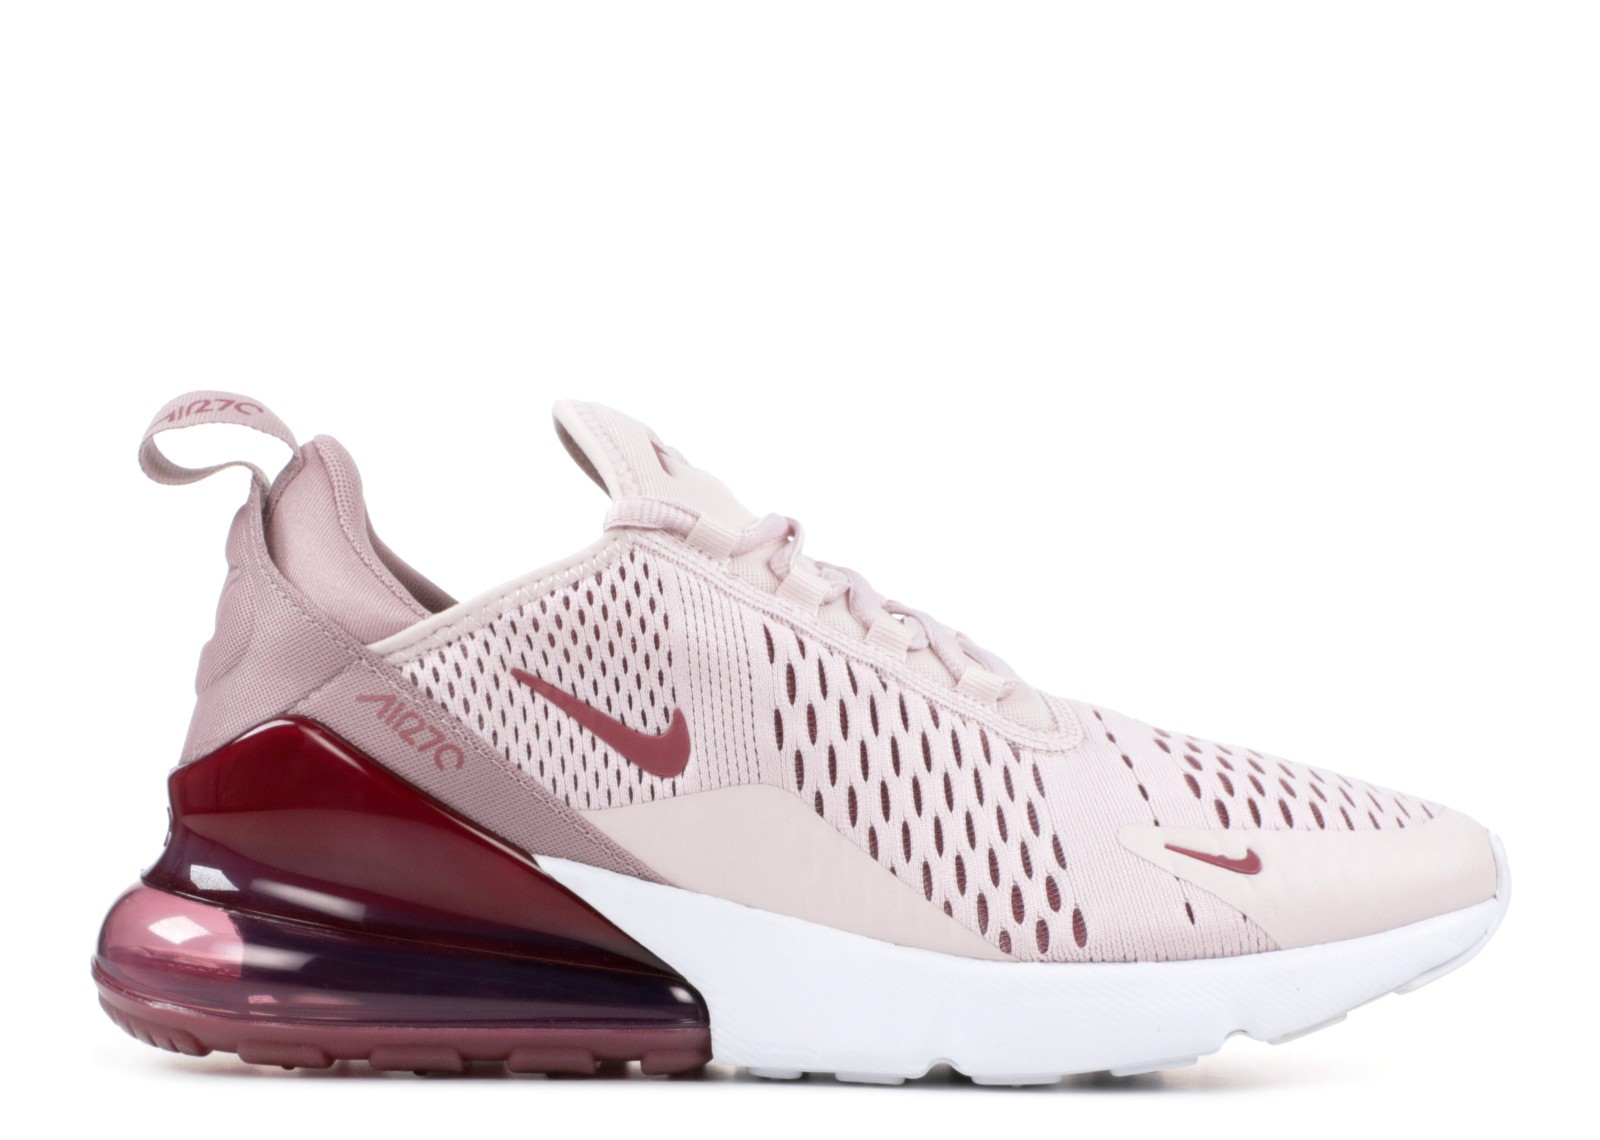 Exclusivo Nike Rose Nike Air Huarache Metallic Mujer Zapatos